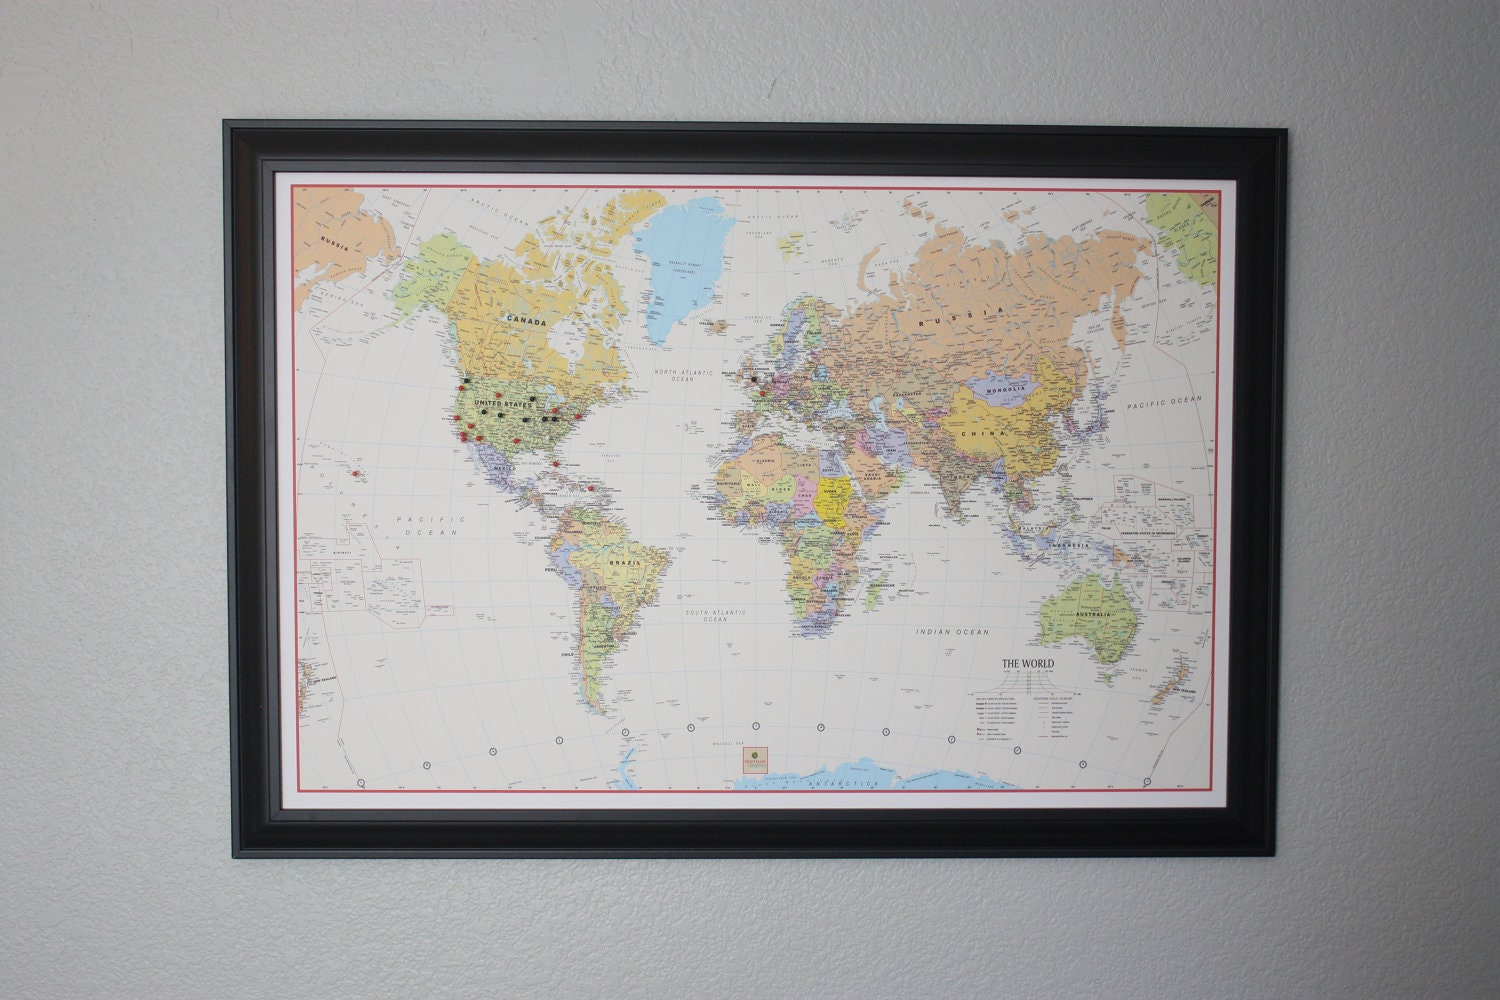 Framed Push Pin World Travel Map by PushPinTravelMaps on Etsy – Framed World Travel Map